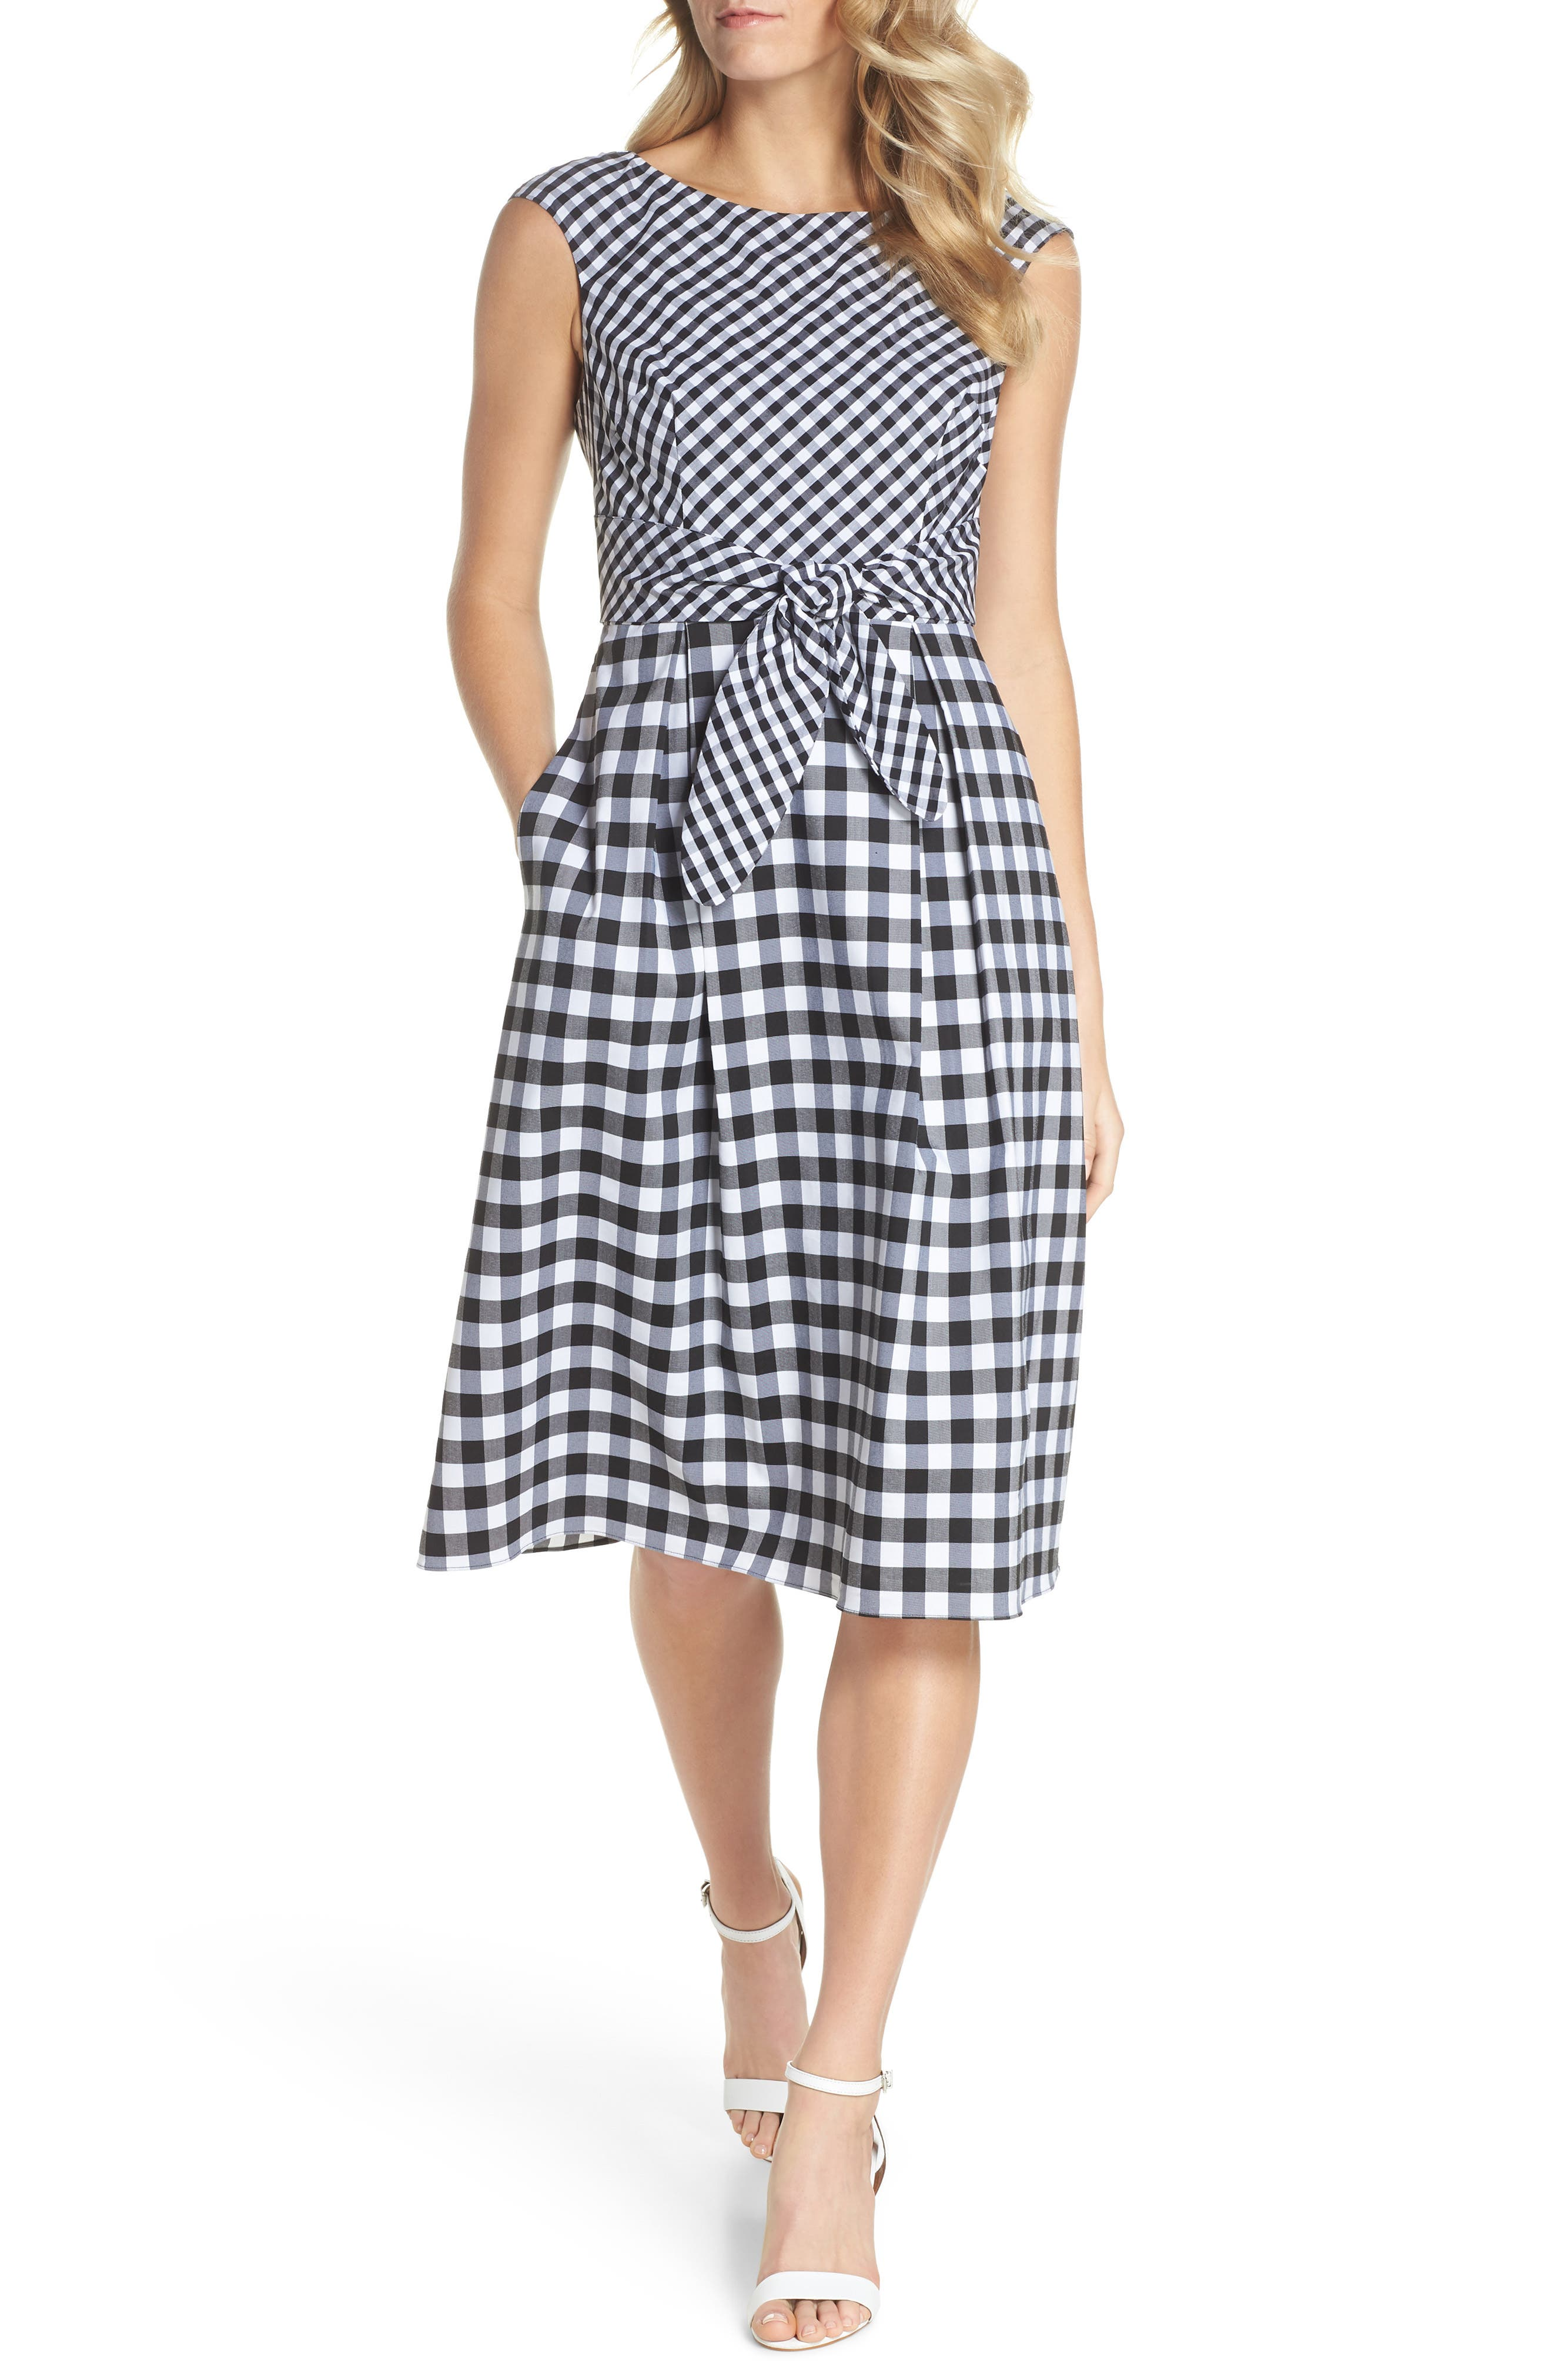 ADRIANNA PAPELL Gingham Tie Front Midi Dress, Main, color, 002